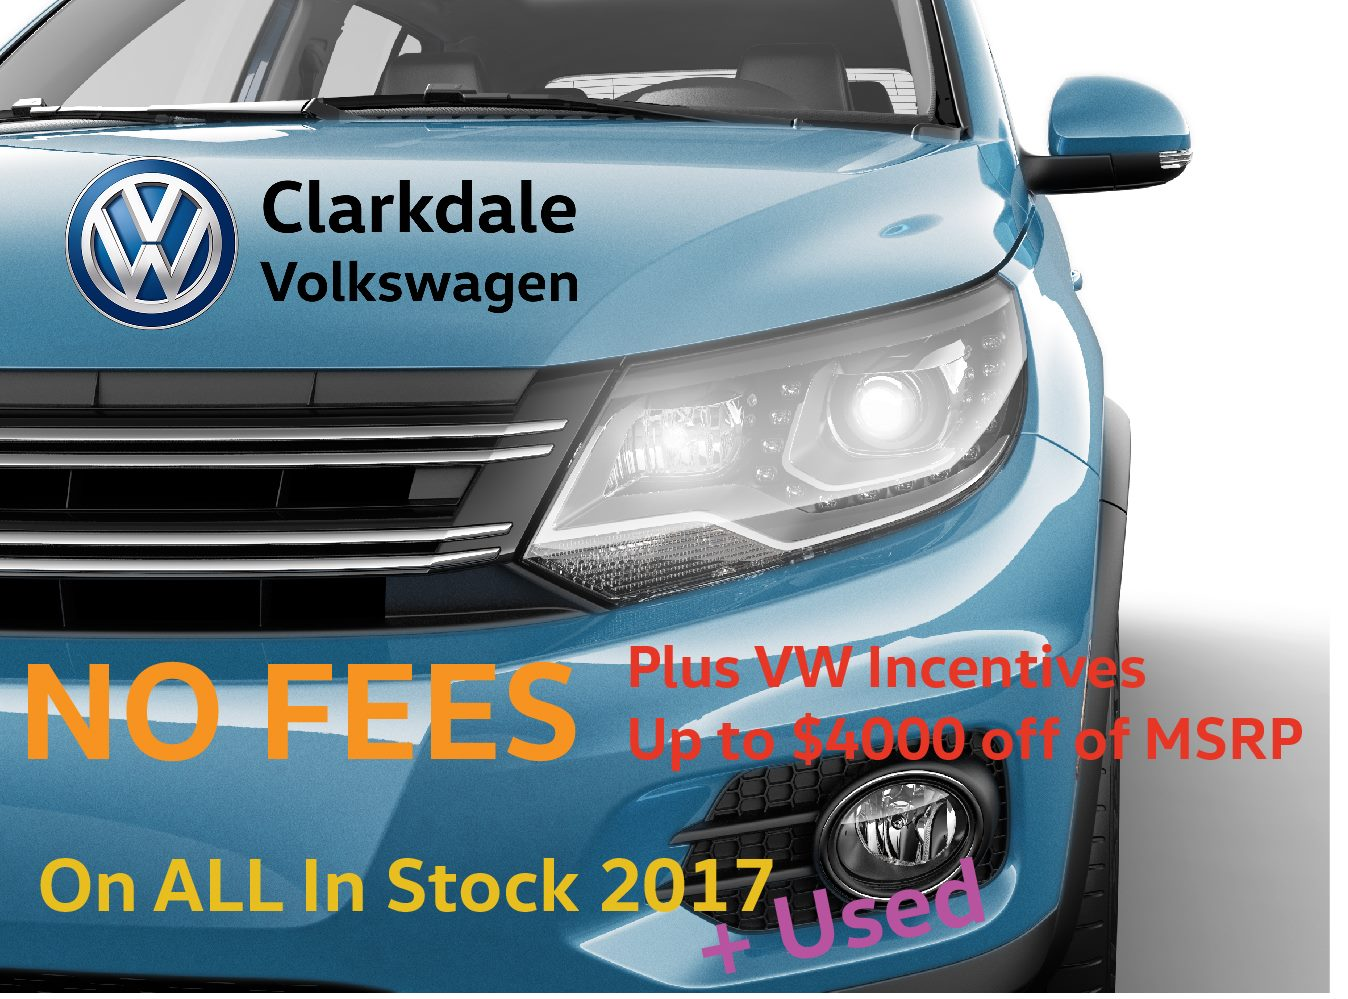 Clarkdale-vw-time-to-upgrade